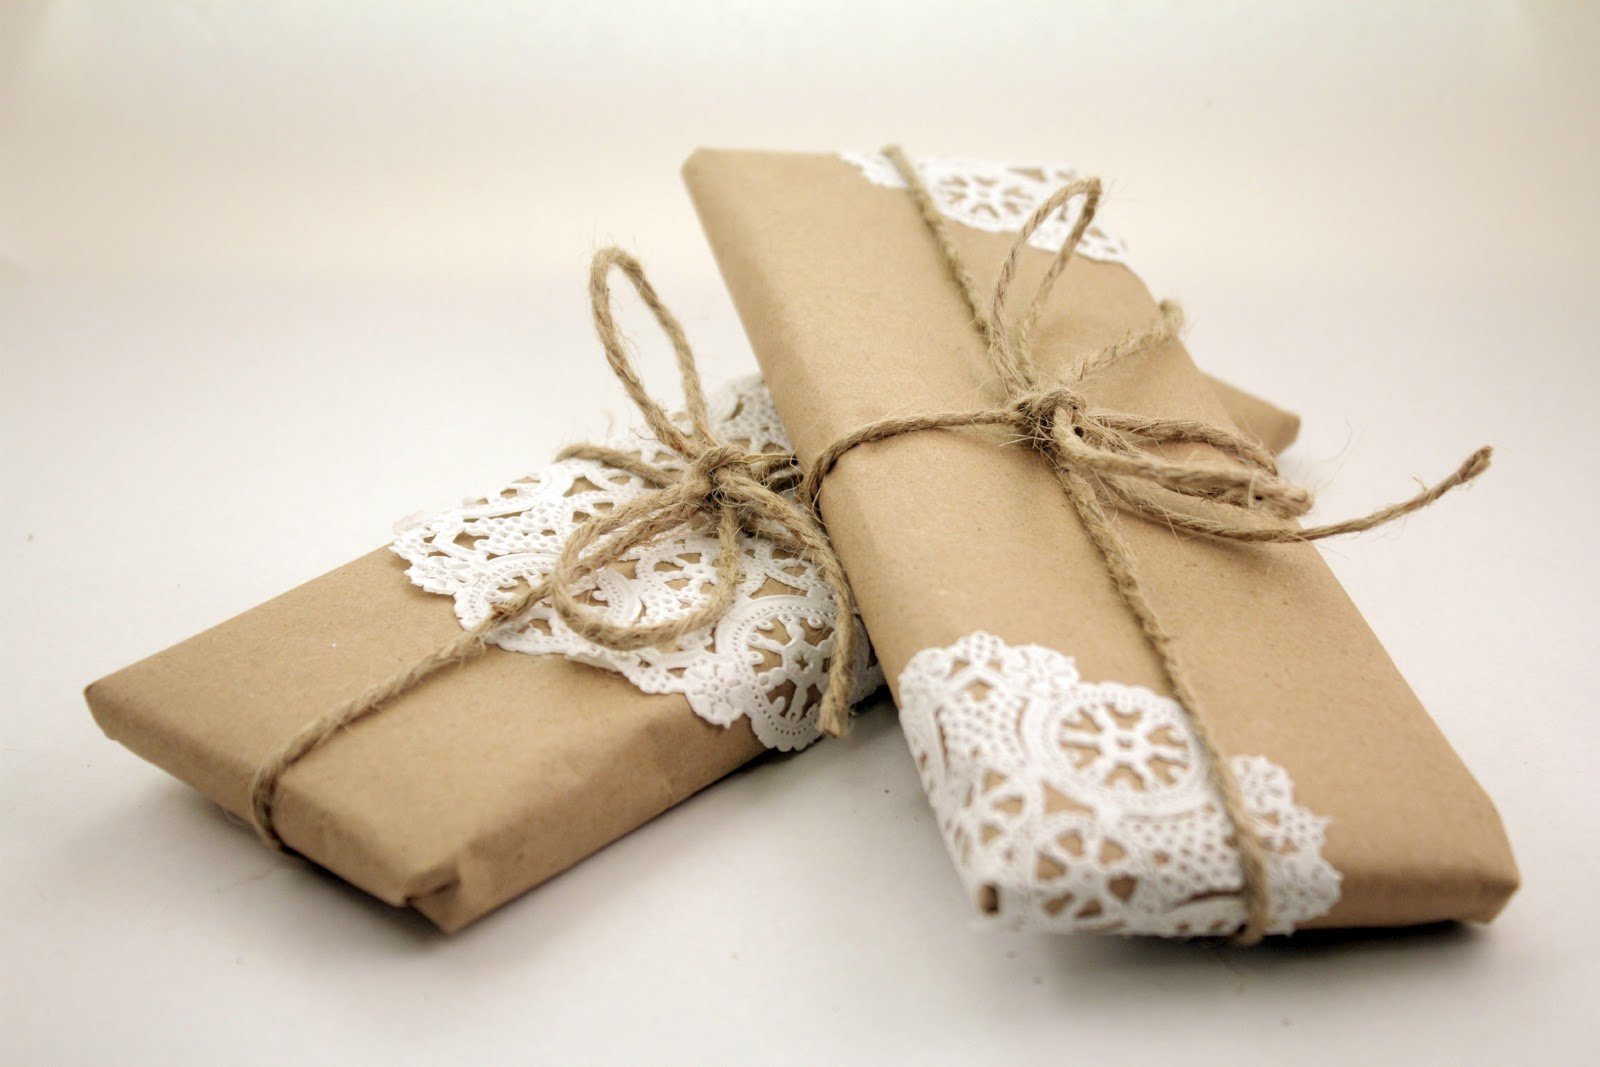 Small Thoughts Brown Paper Packages Tied Up With String